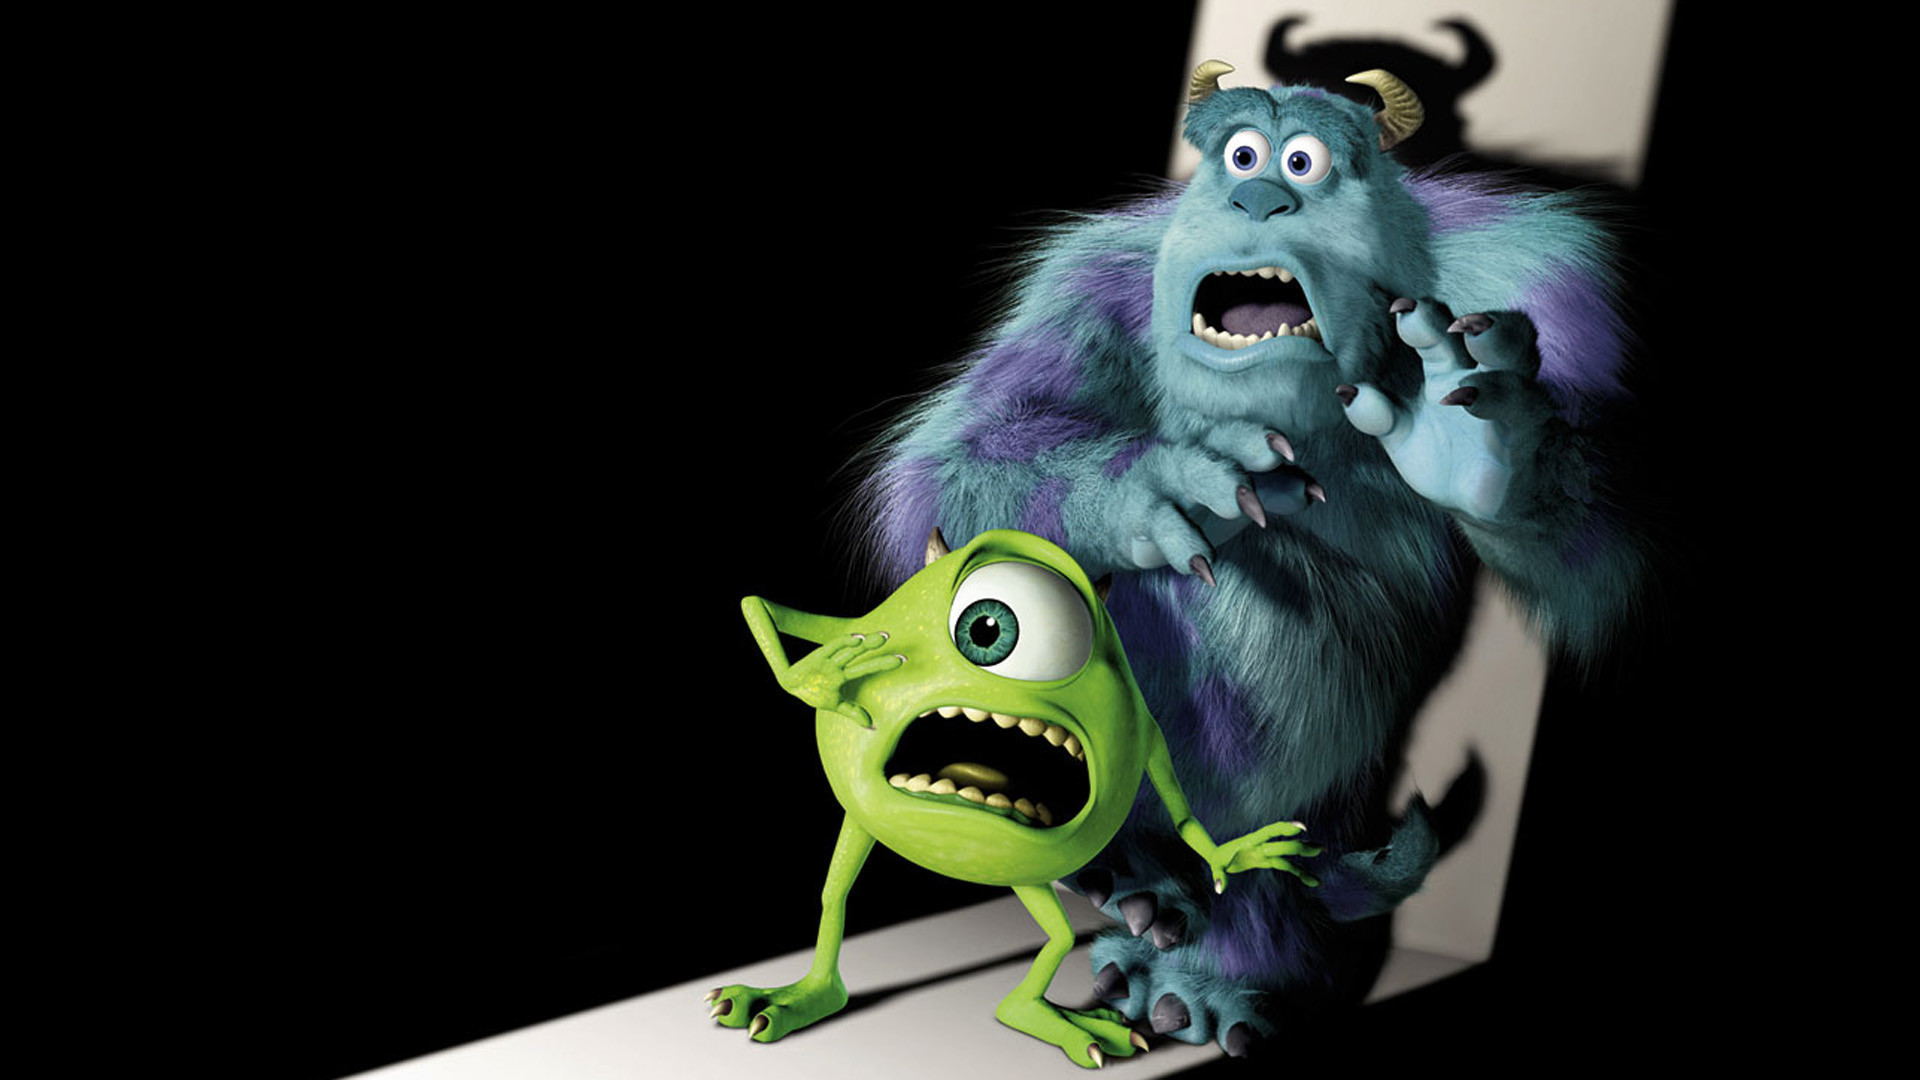 fbb528d0320f0 Monsters Inc Wallpapers HD Wallpapers 1920x1080